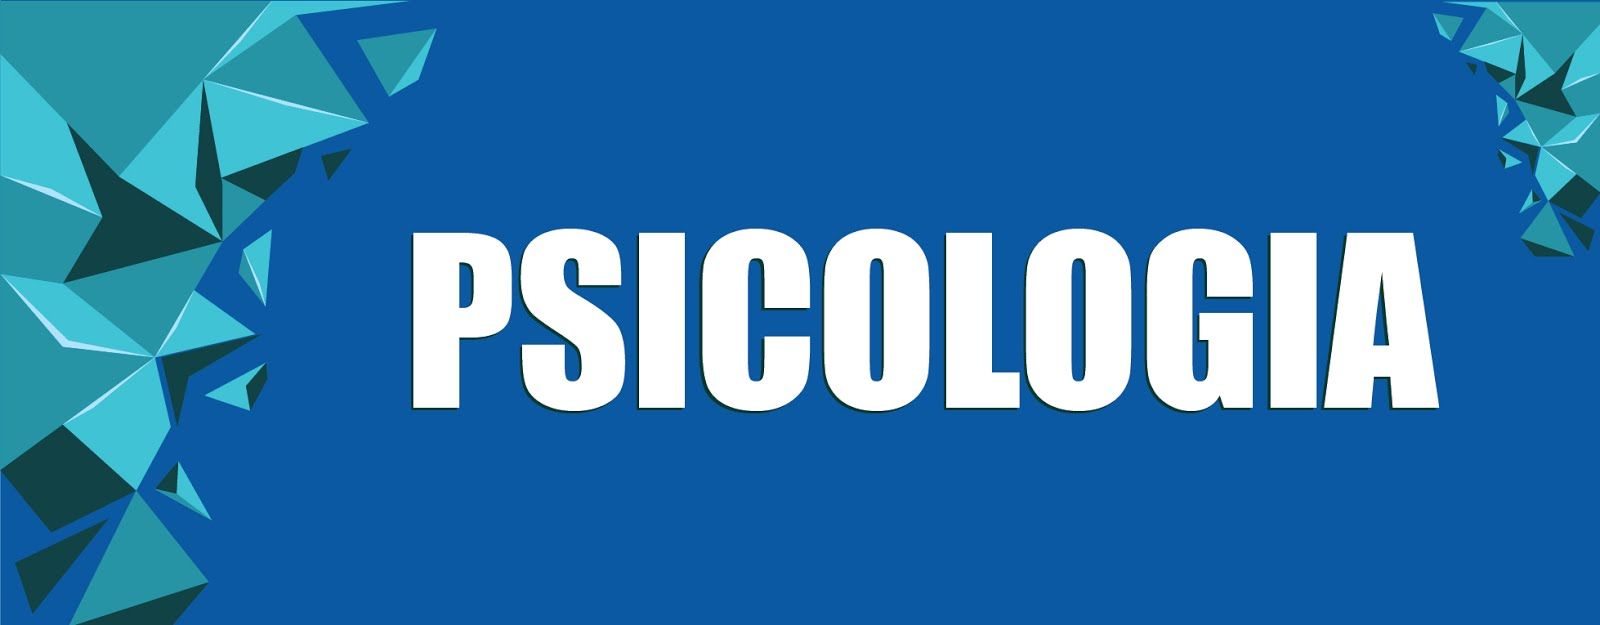 Revista de Psicología e Interconductismo